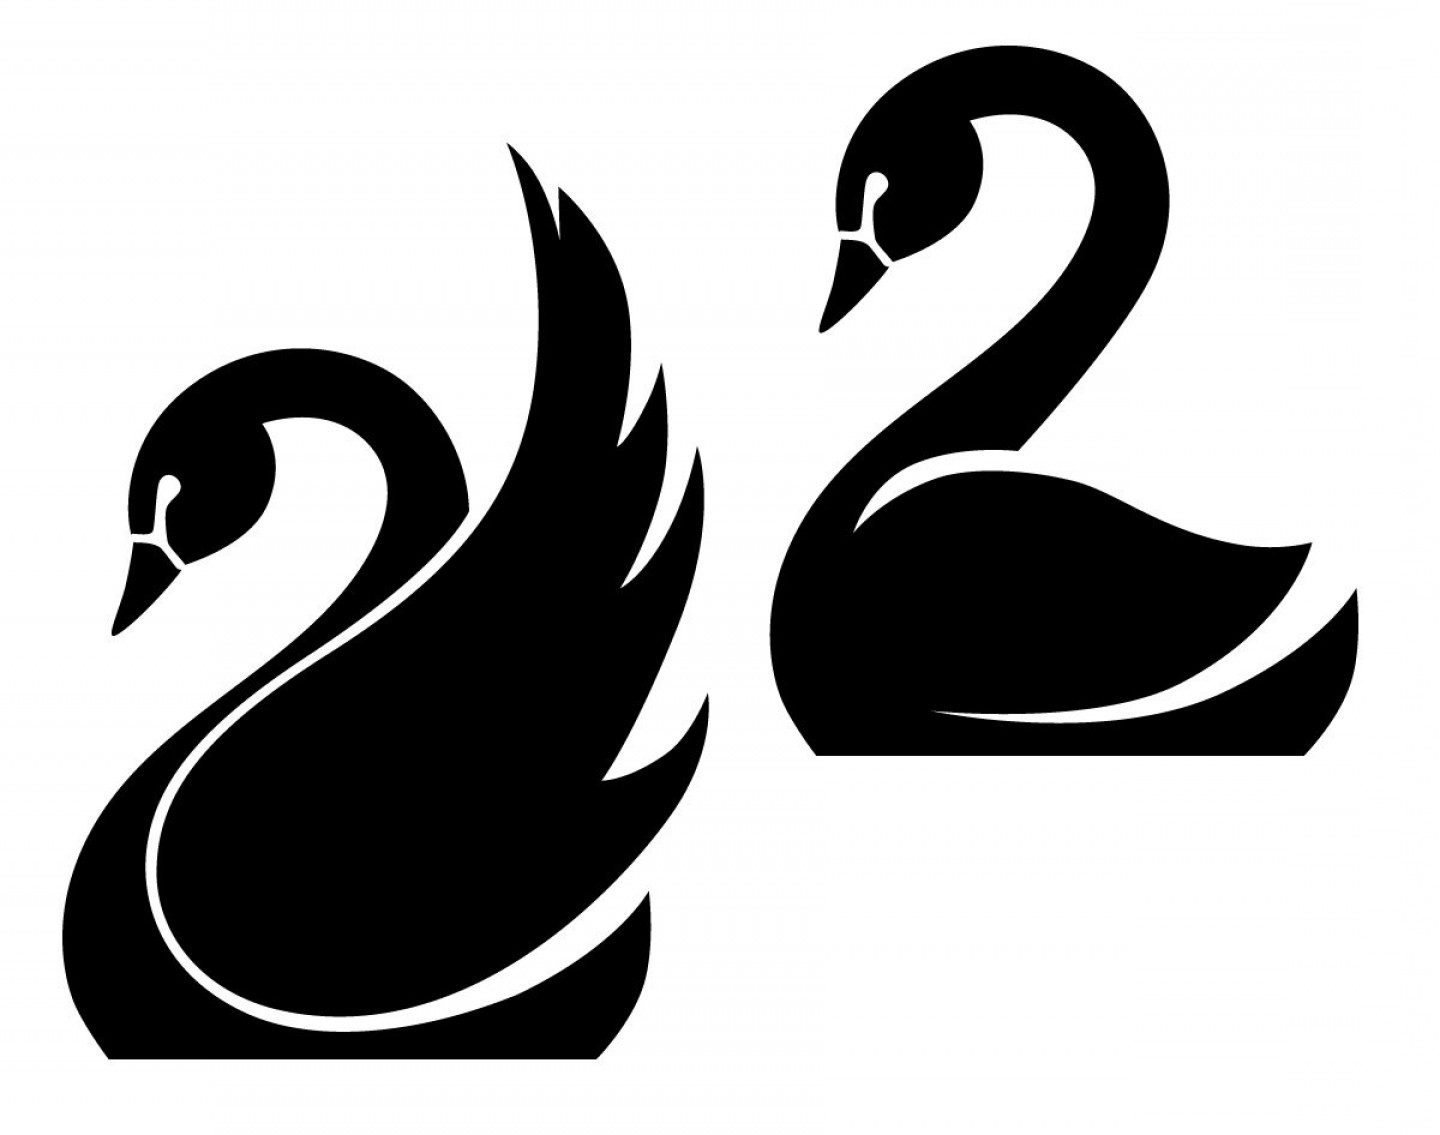 Swan Silhouette Vector: Swans Dxf Svg Eps Png File For Use With